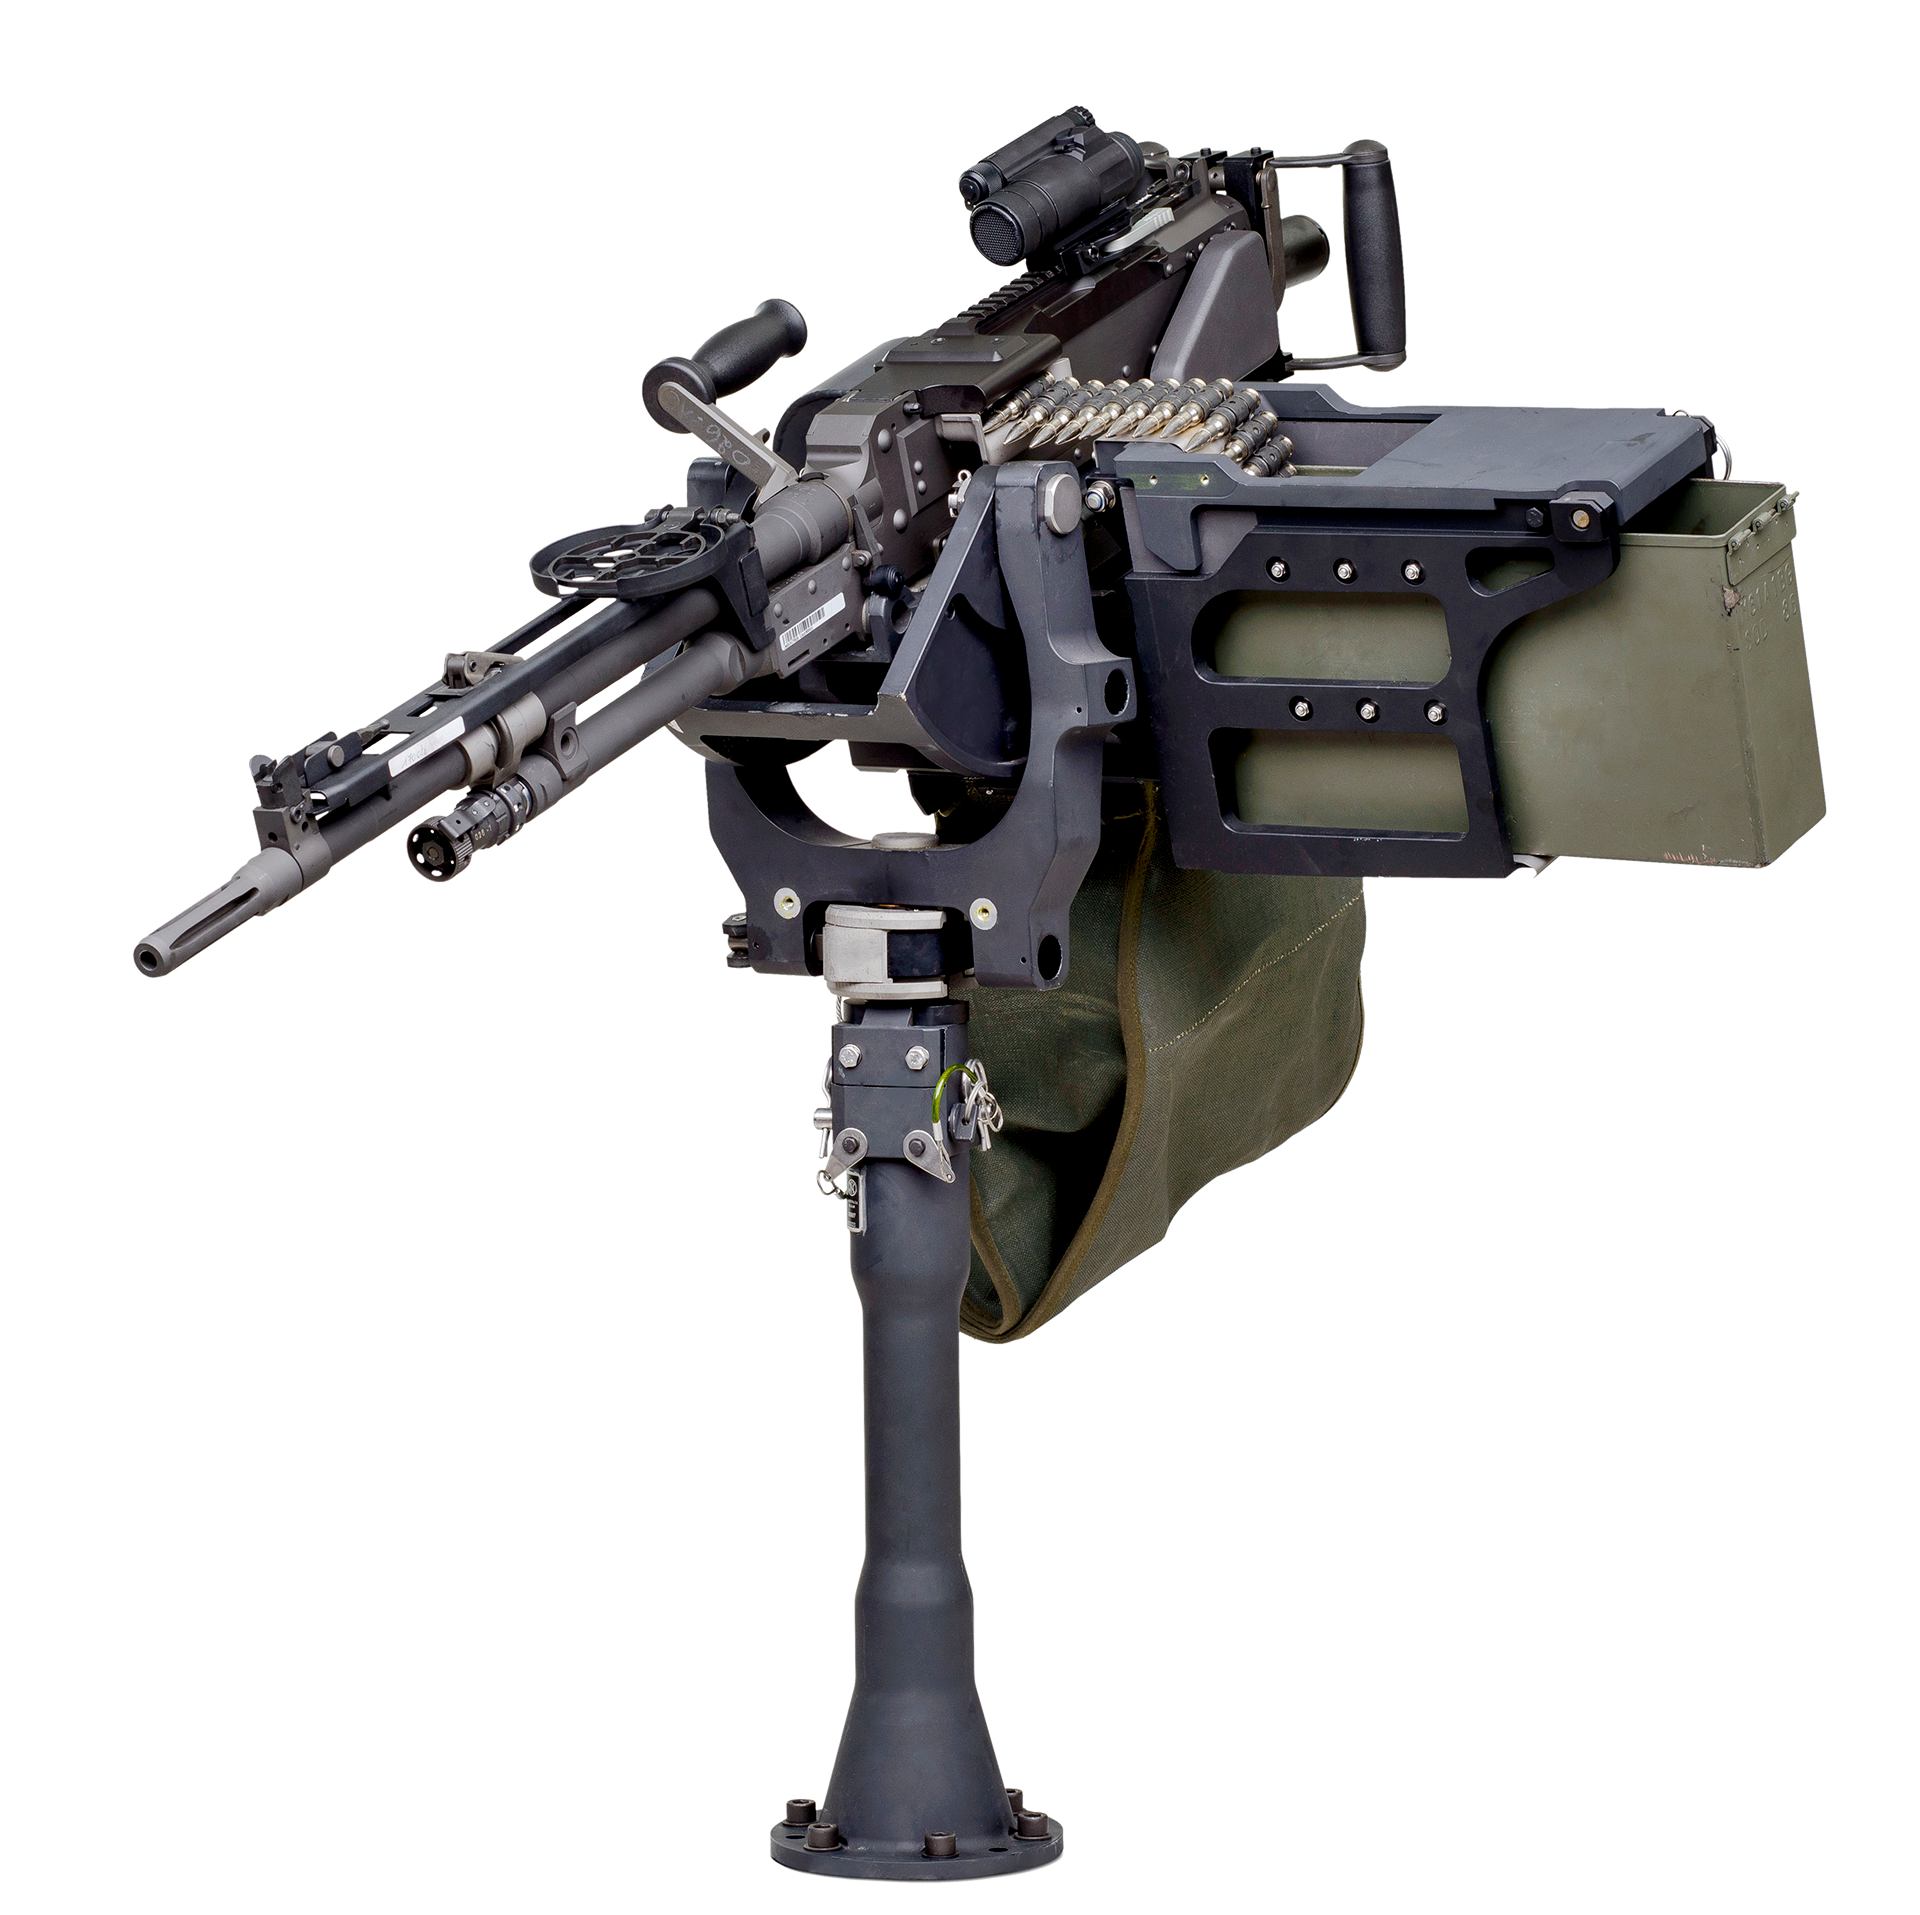 FN LPS for MAG